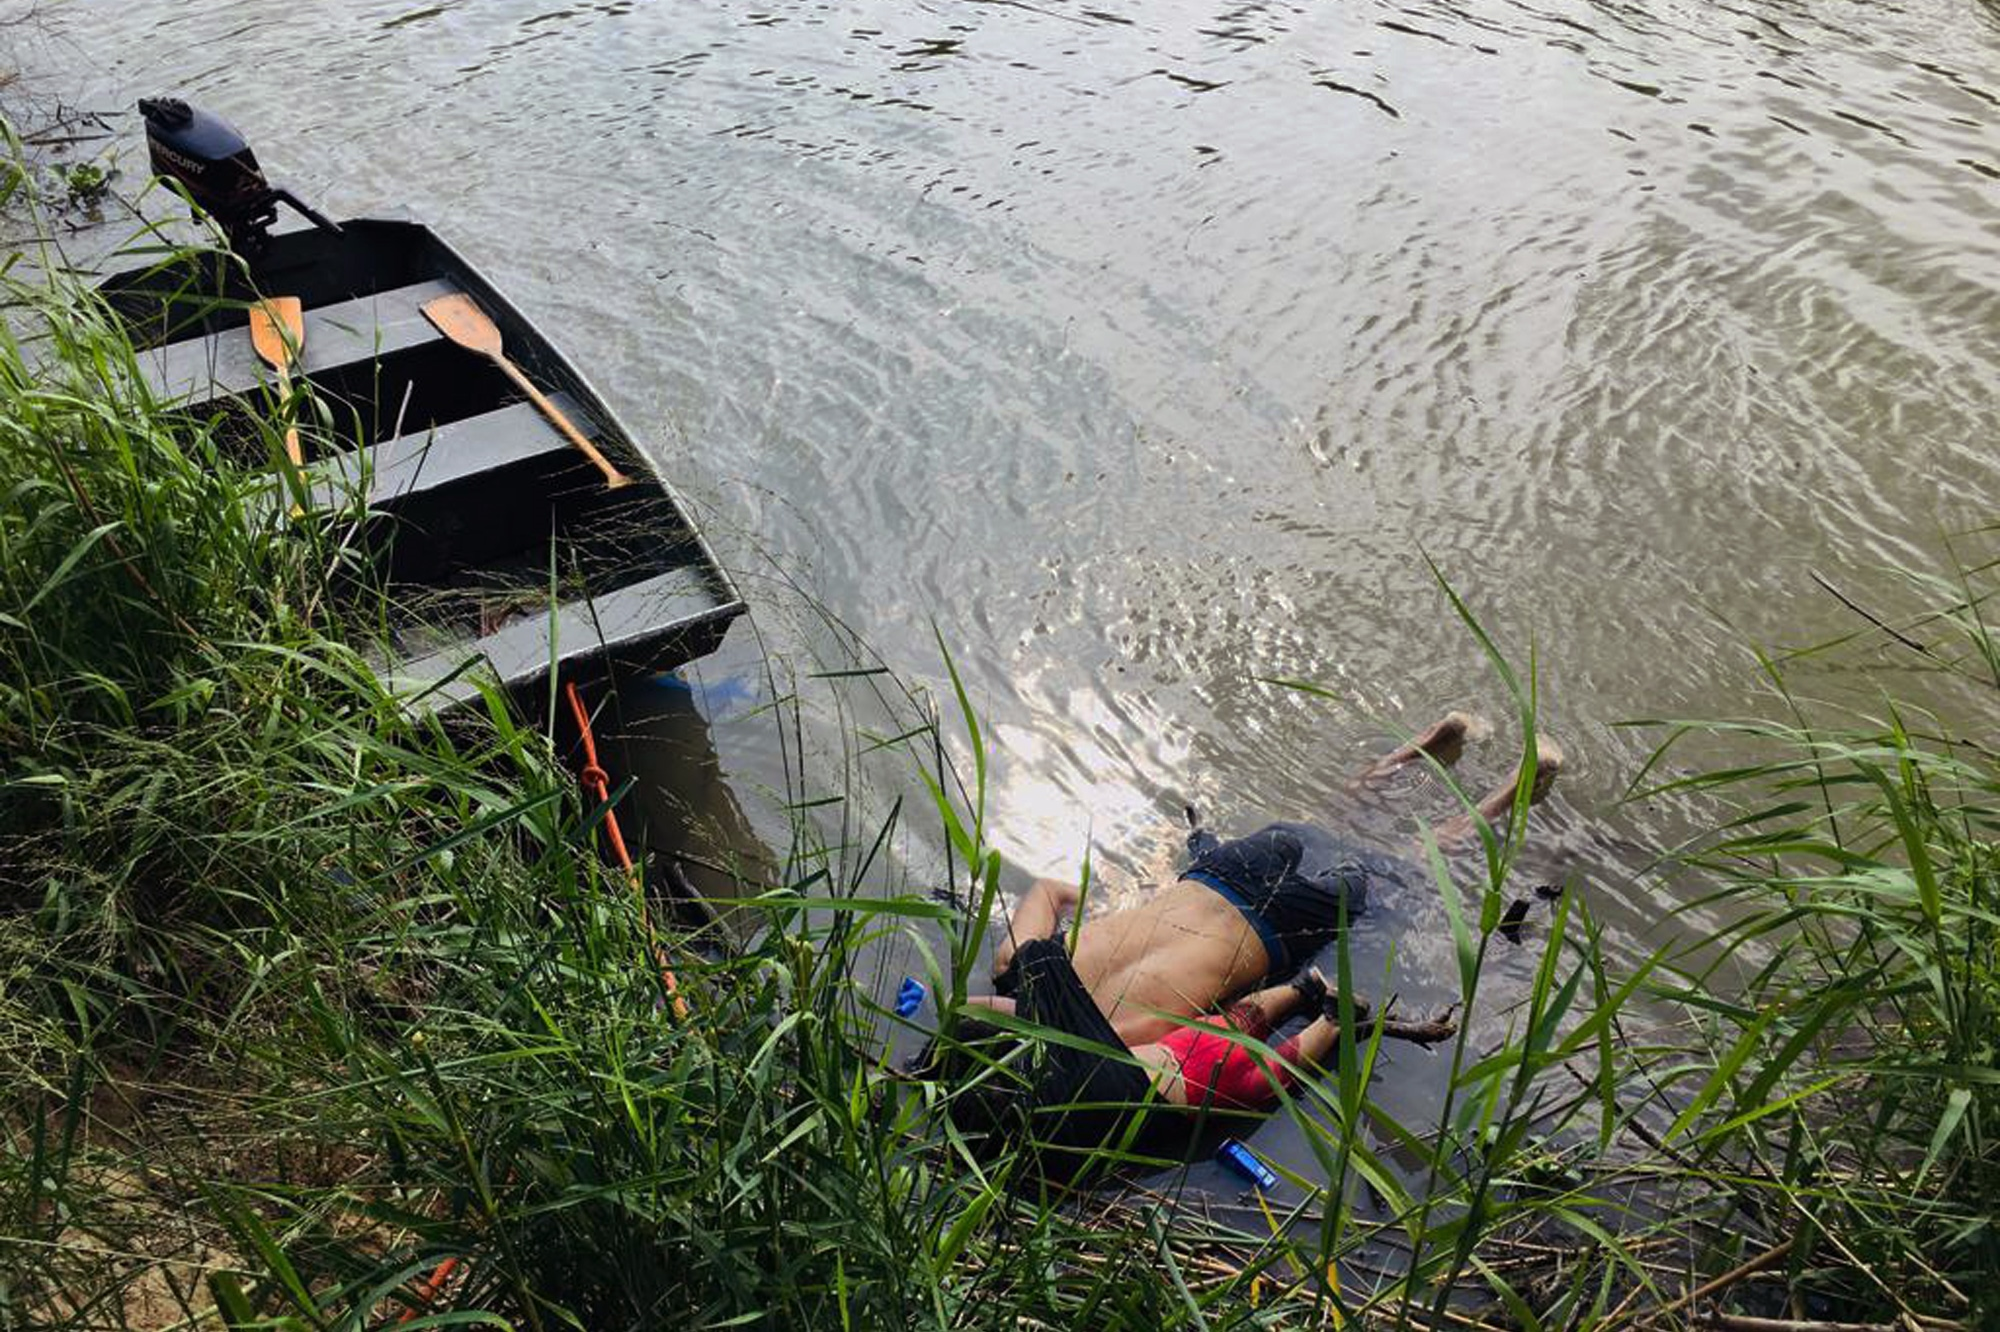 View of the bodies of Salvadoran migrant Oscar Martinez Ramirez and his daughter, who drowned while trying to cross the Rio Grande -on their way to the US- in Matamoros, state of Tamaulipas on June 24, 2019. (STR/AFP/Getty Images)